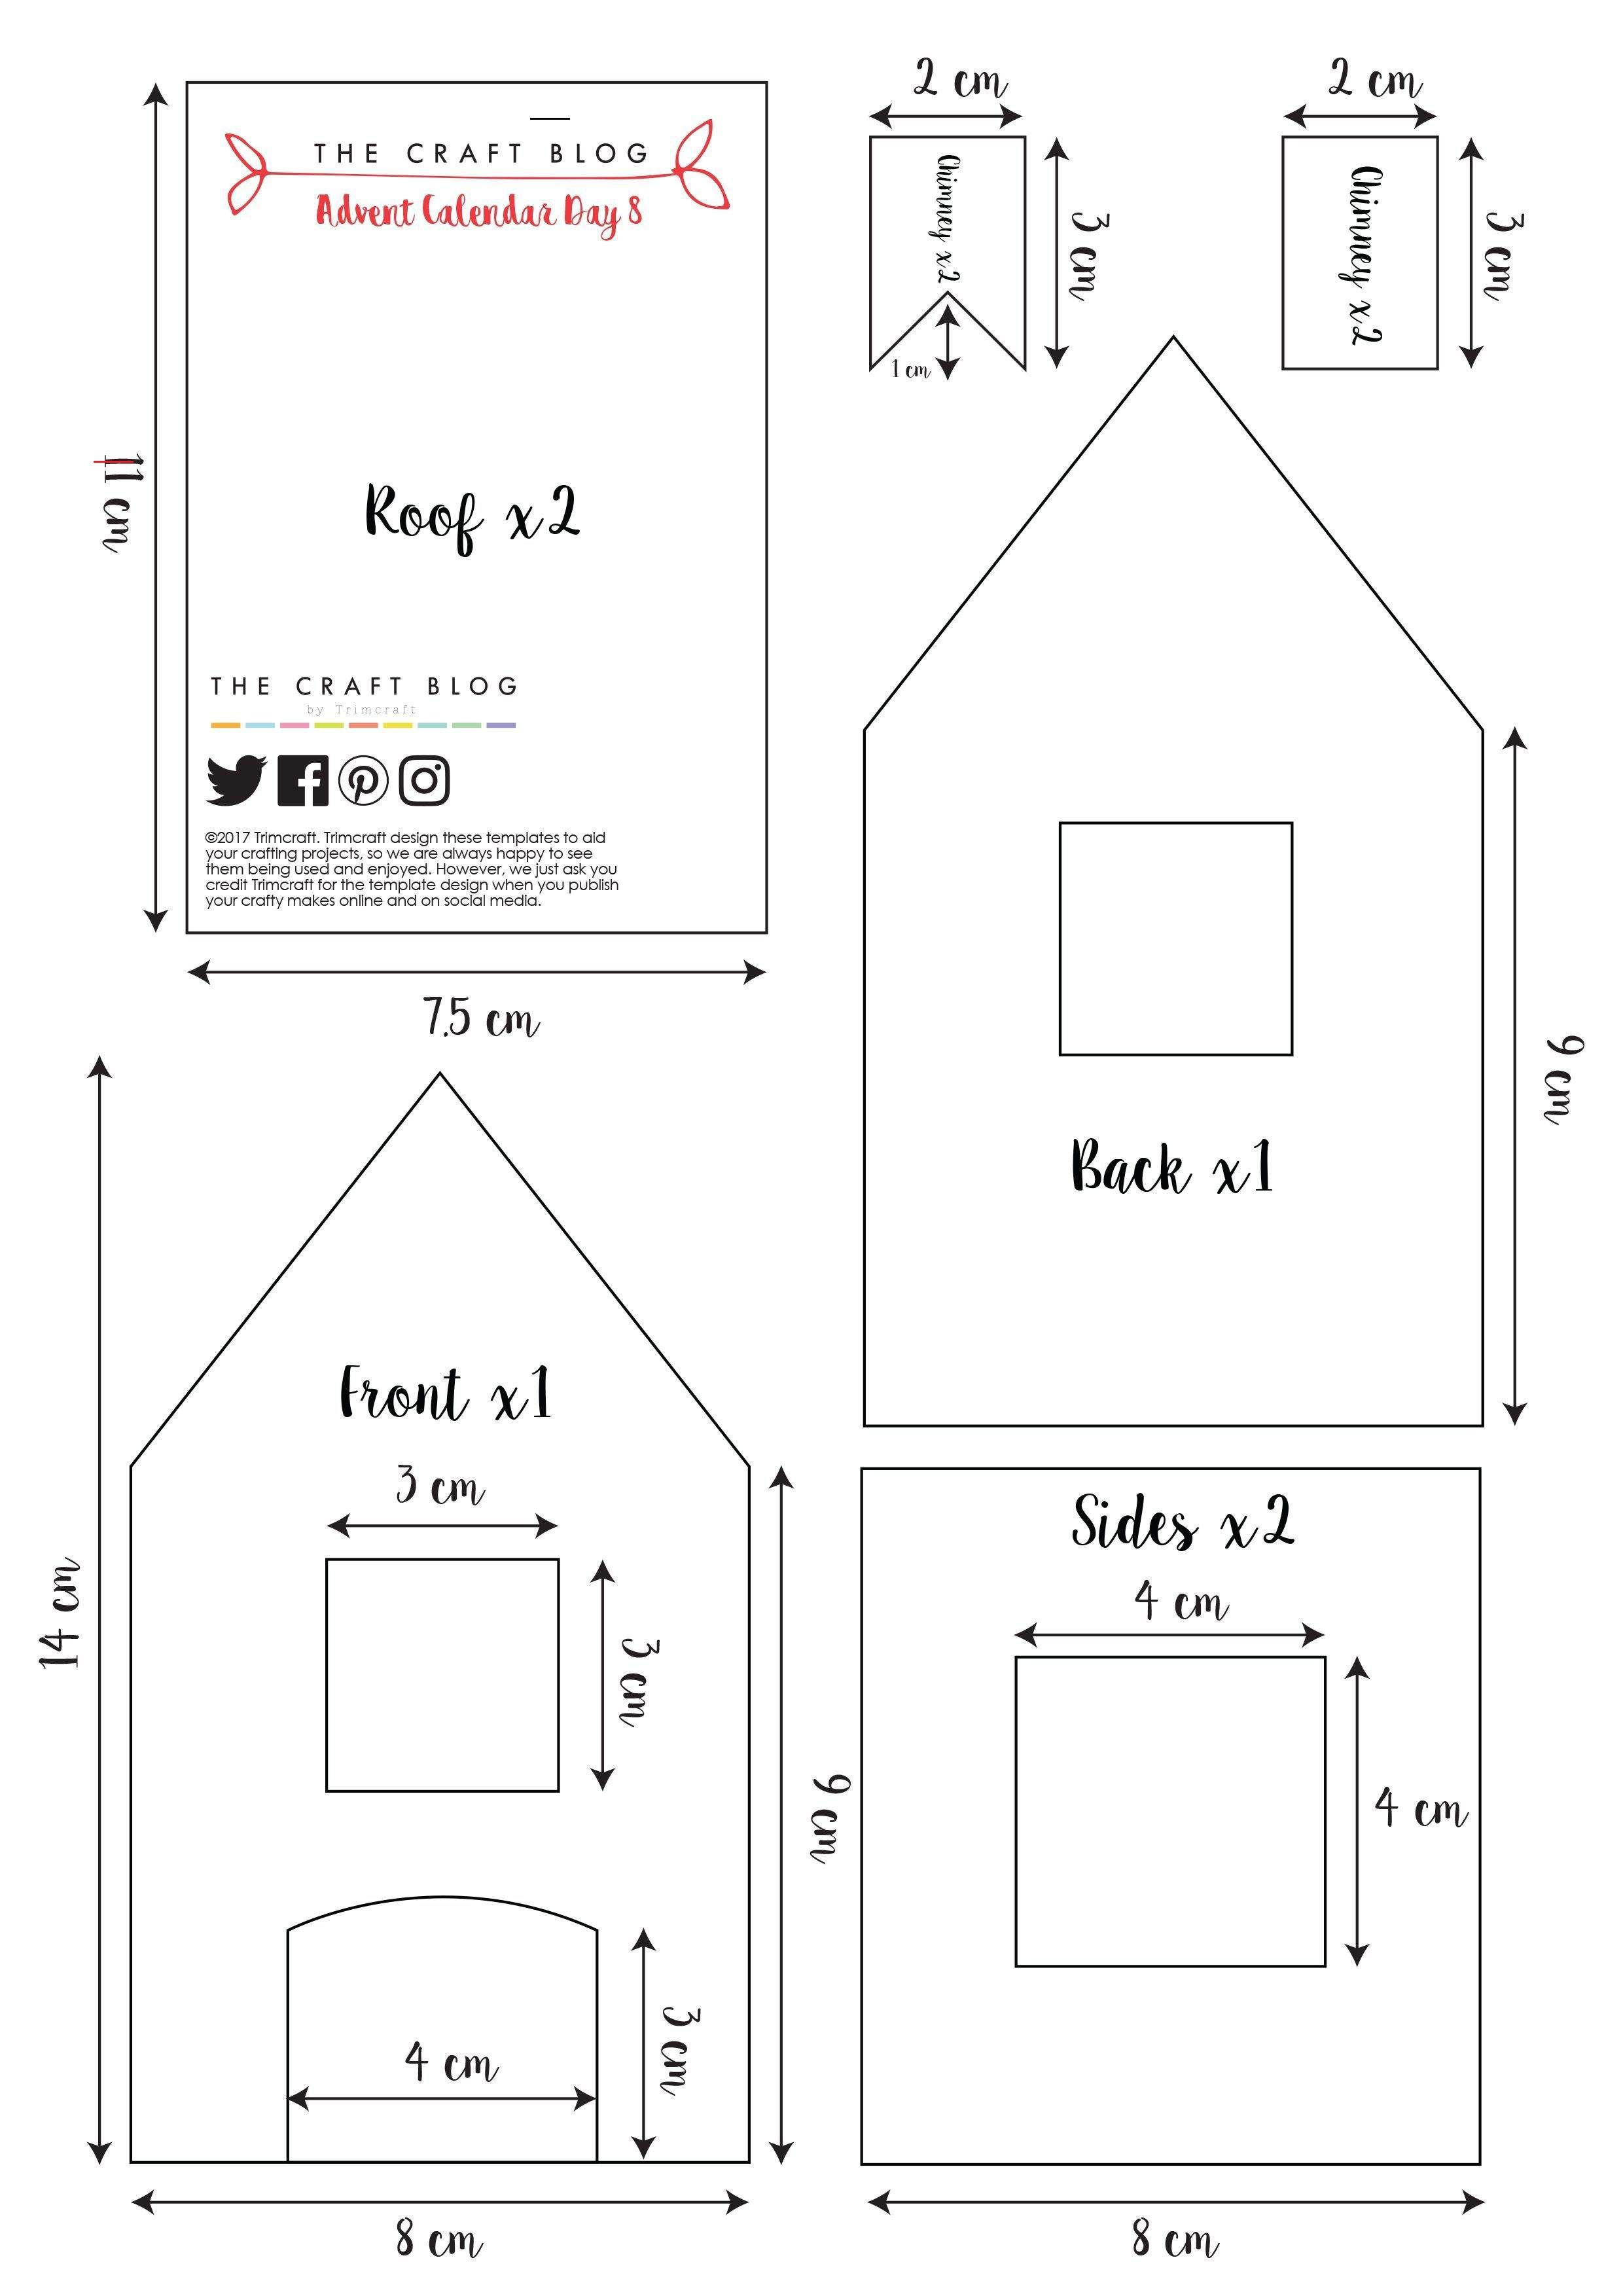 Pin By Joan Tuure On Christmas Art In 2020 Gingerbread House Gingerbread House Template Printable Gingerbread House Template